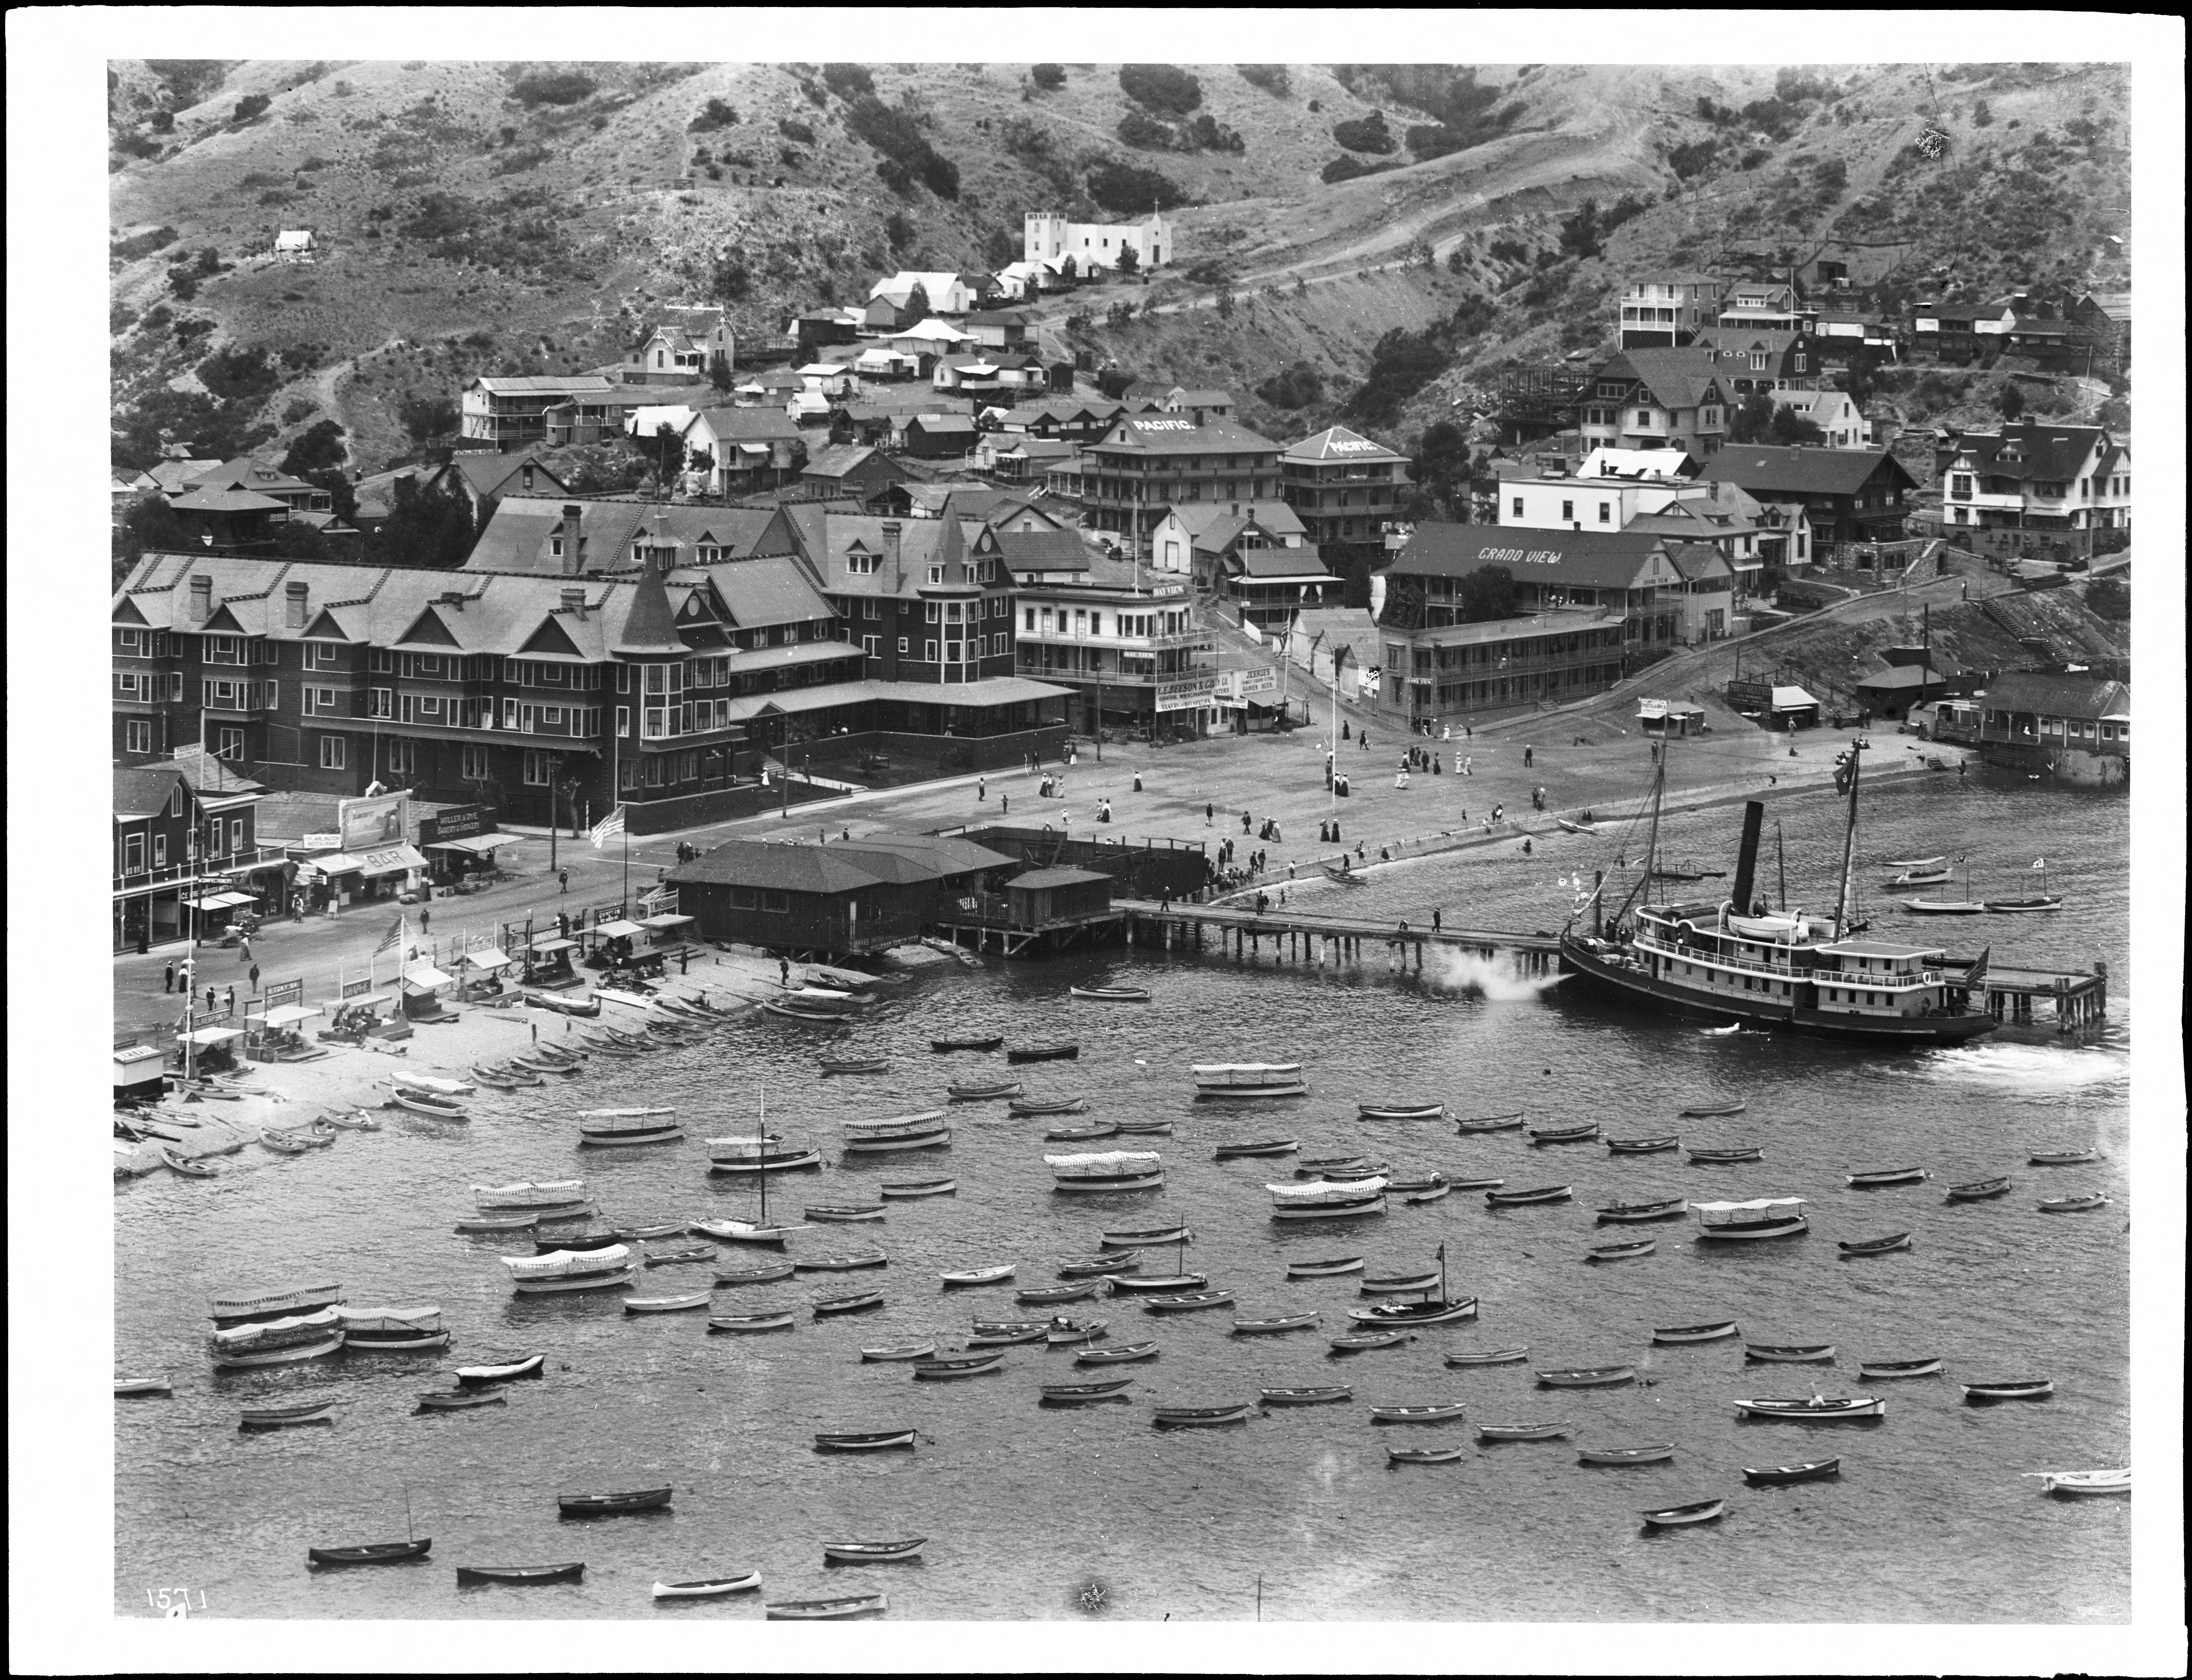 File Town Of Avalon On Santa Catalina Island With New Metropole Hotel And Grand View